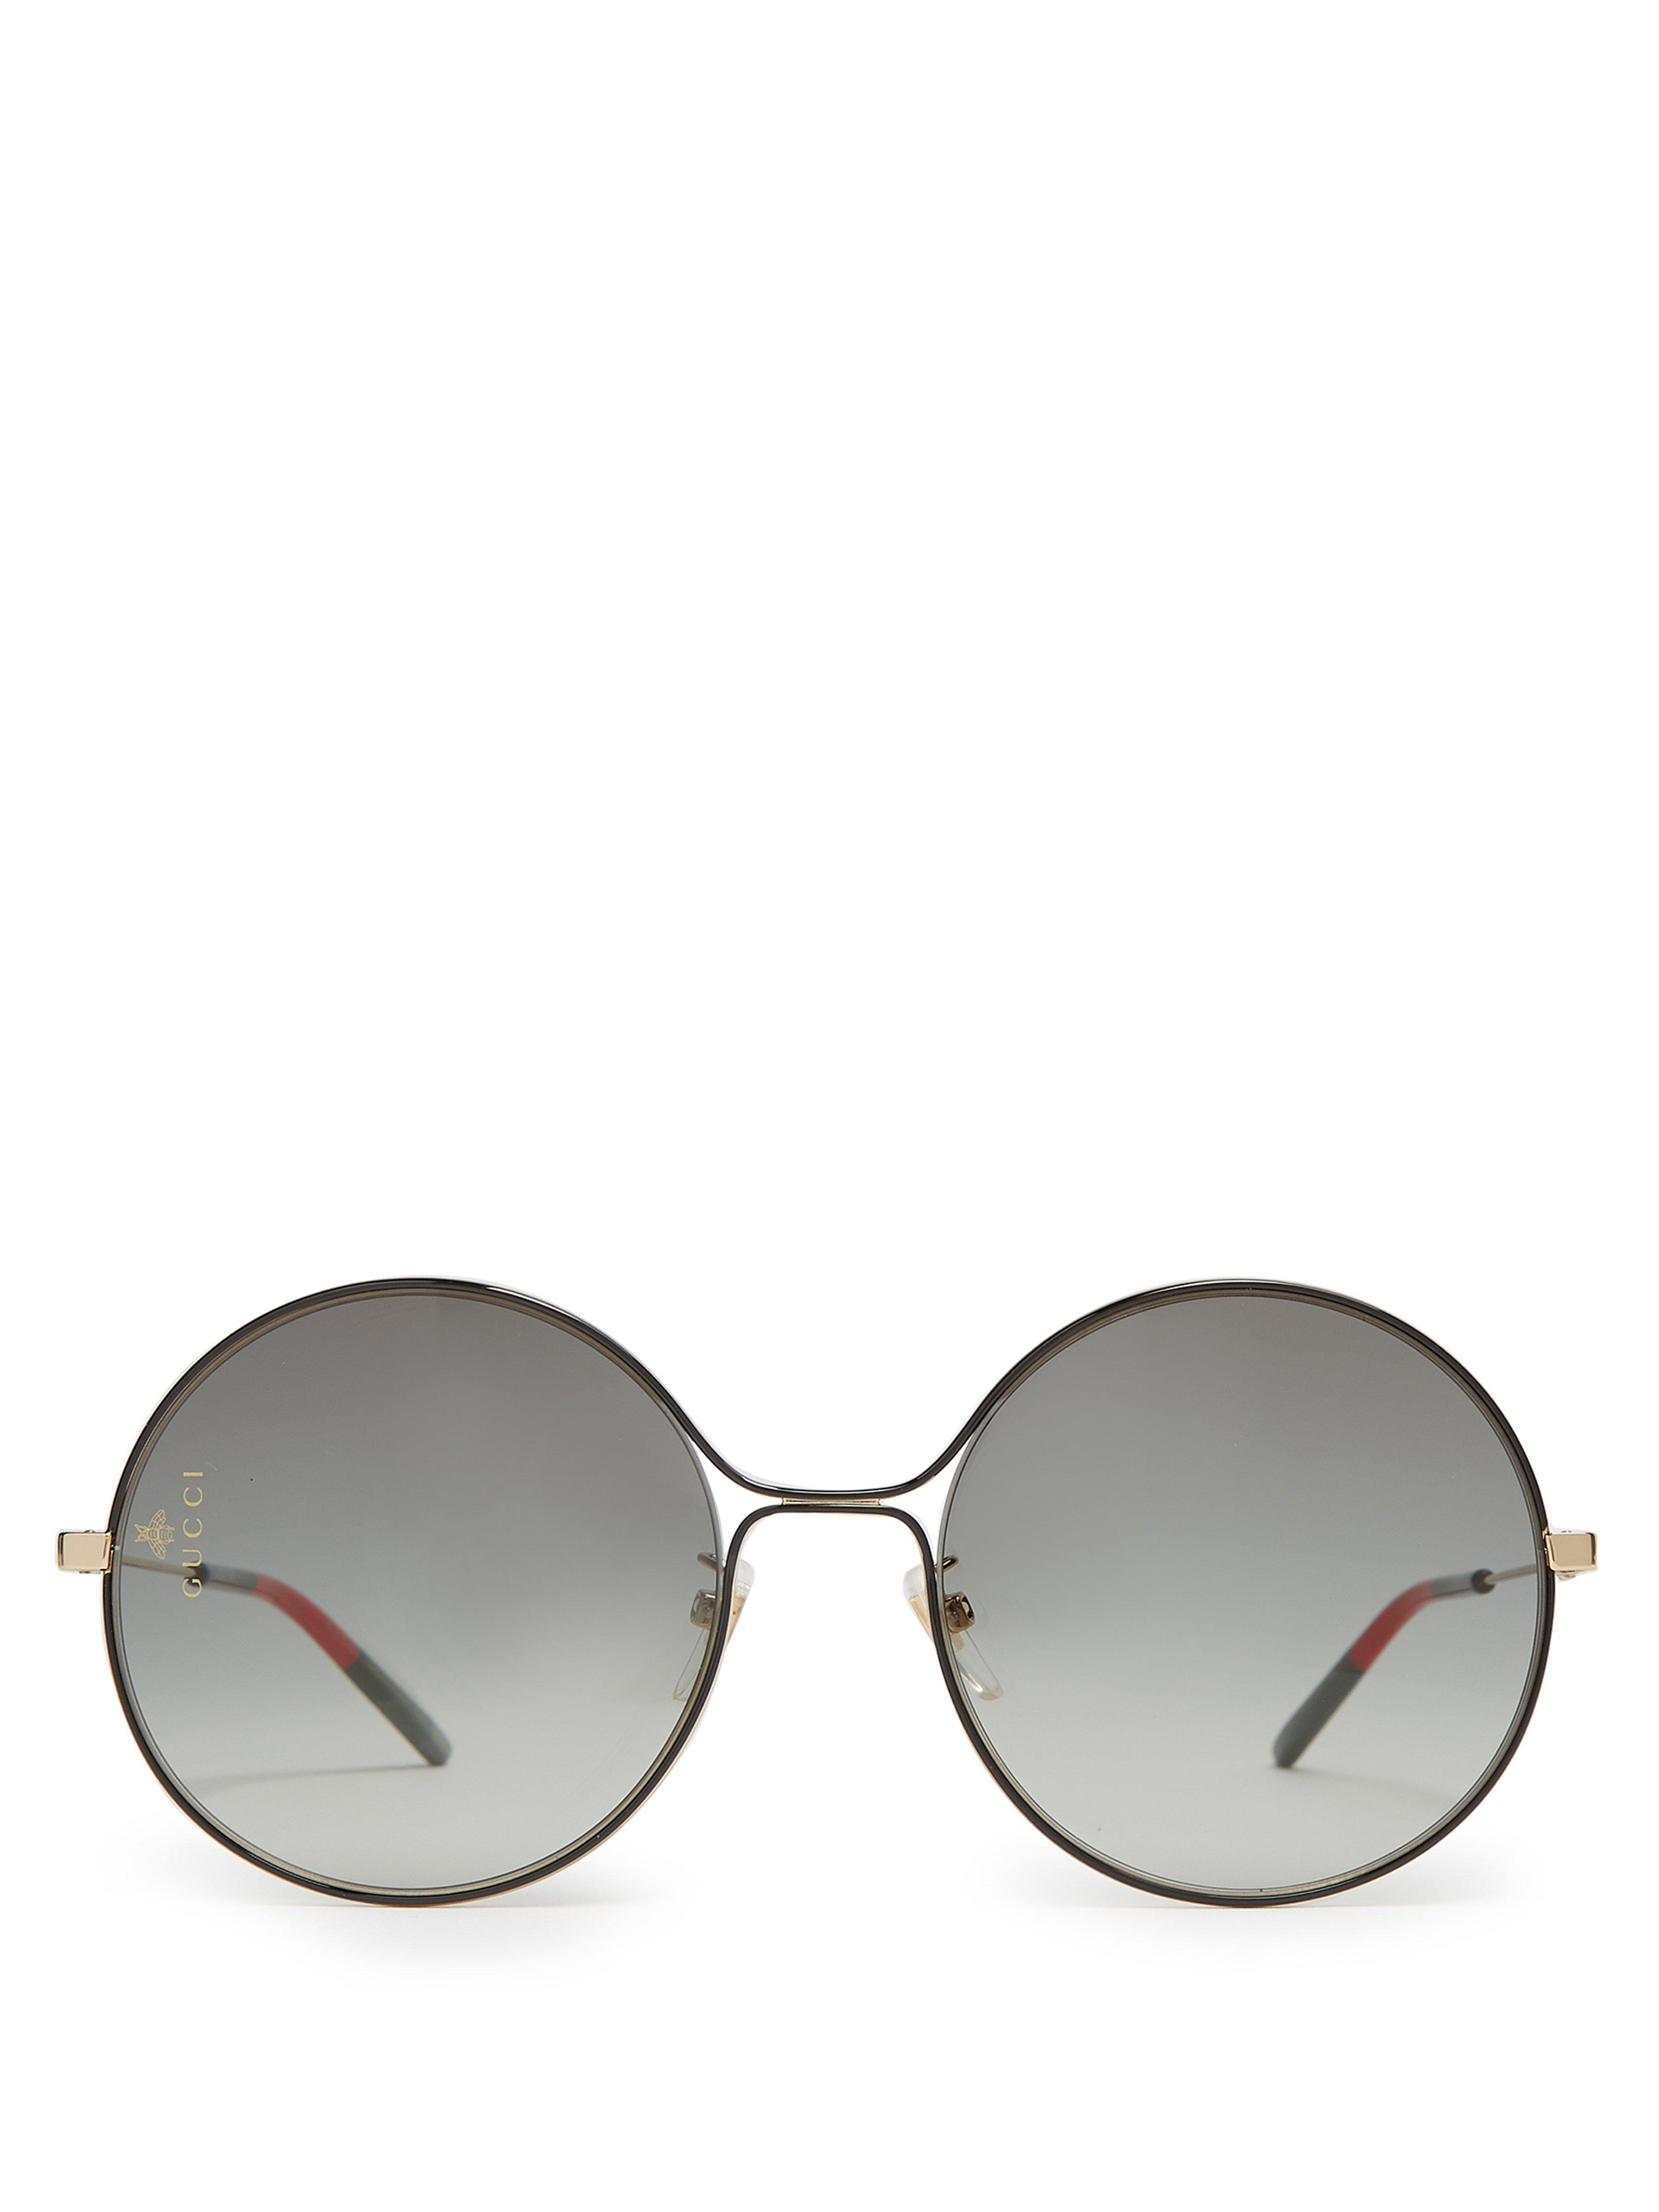 c6bcd3e7b62 Gucci - Multicolor Gg Rounded Frame Metal Sunglasses - Lyst. View fullscreen